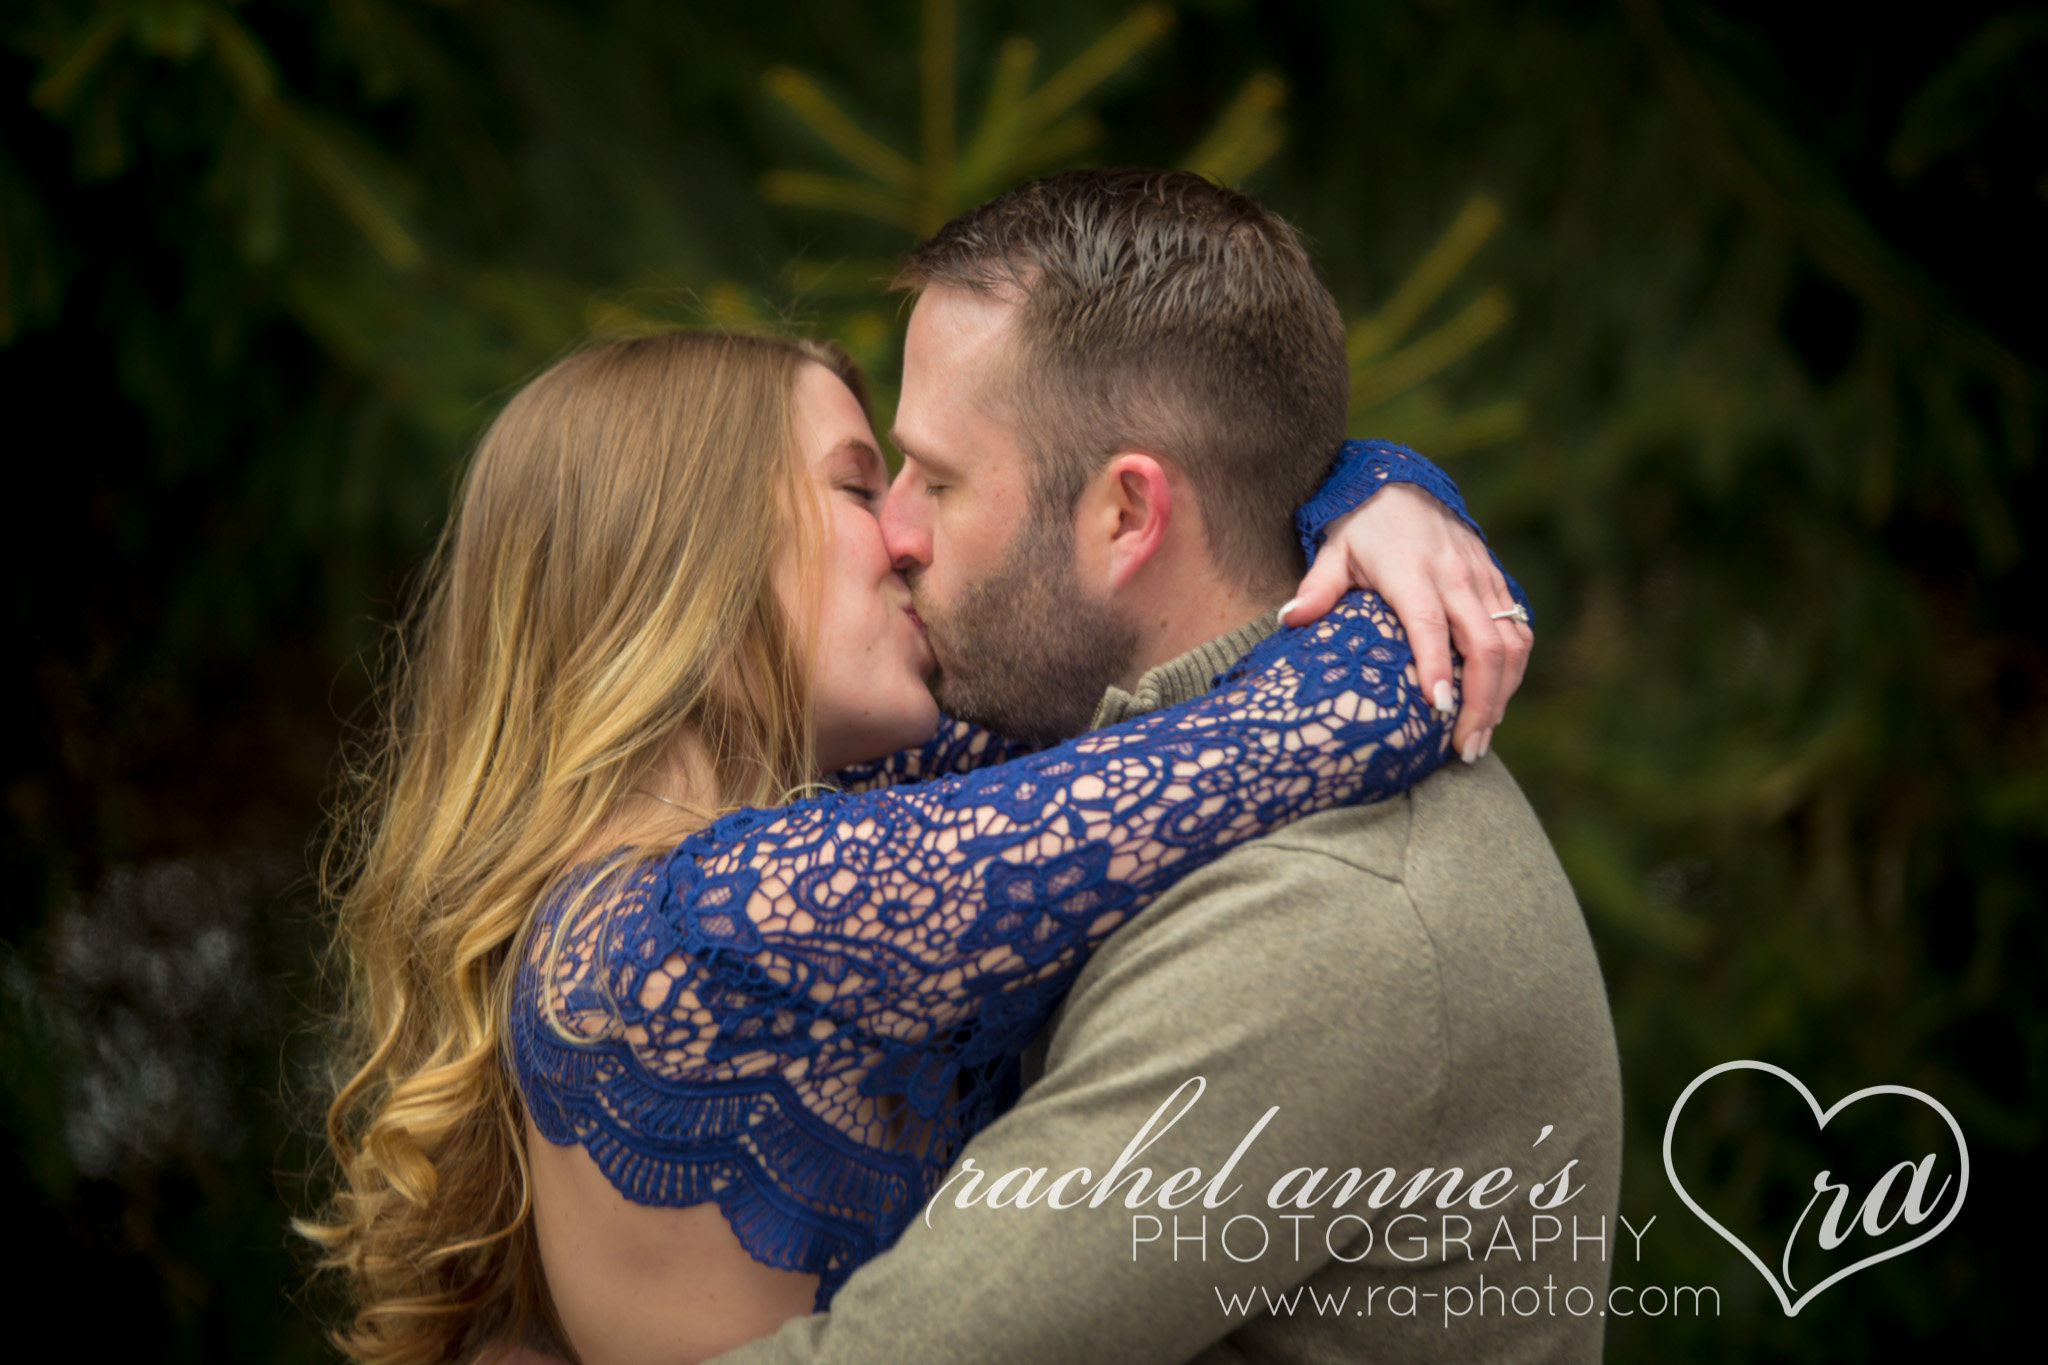 066-JKM-DUBOIS-PA-ENGAGEMENT-PHOTOGRAPHY.jpg